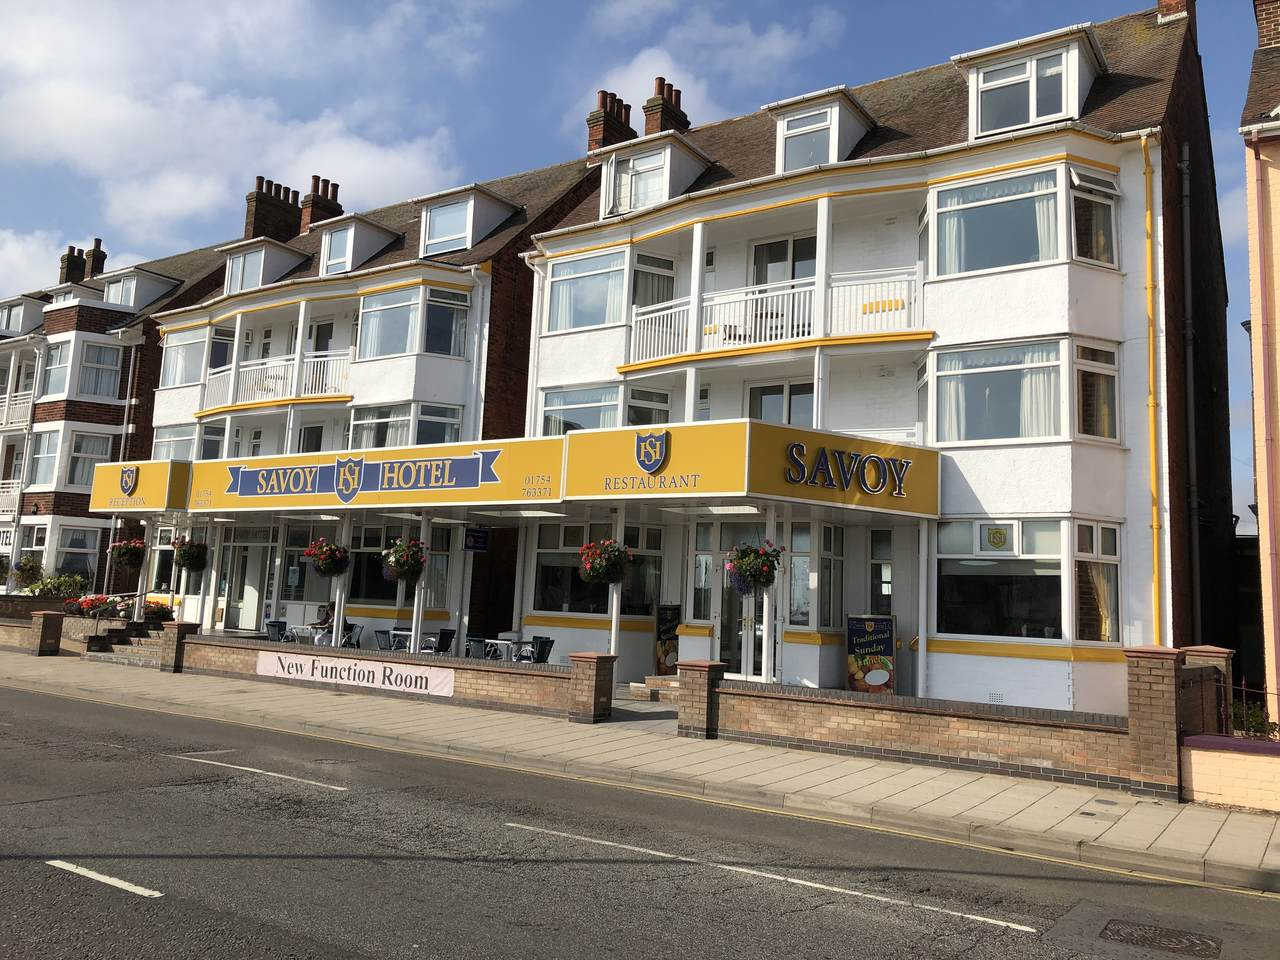 You are currently viewing Hotel Review: Savoy Hotel, Skegness